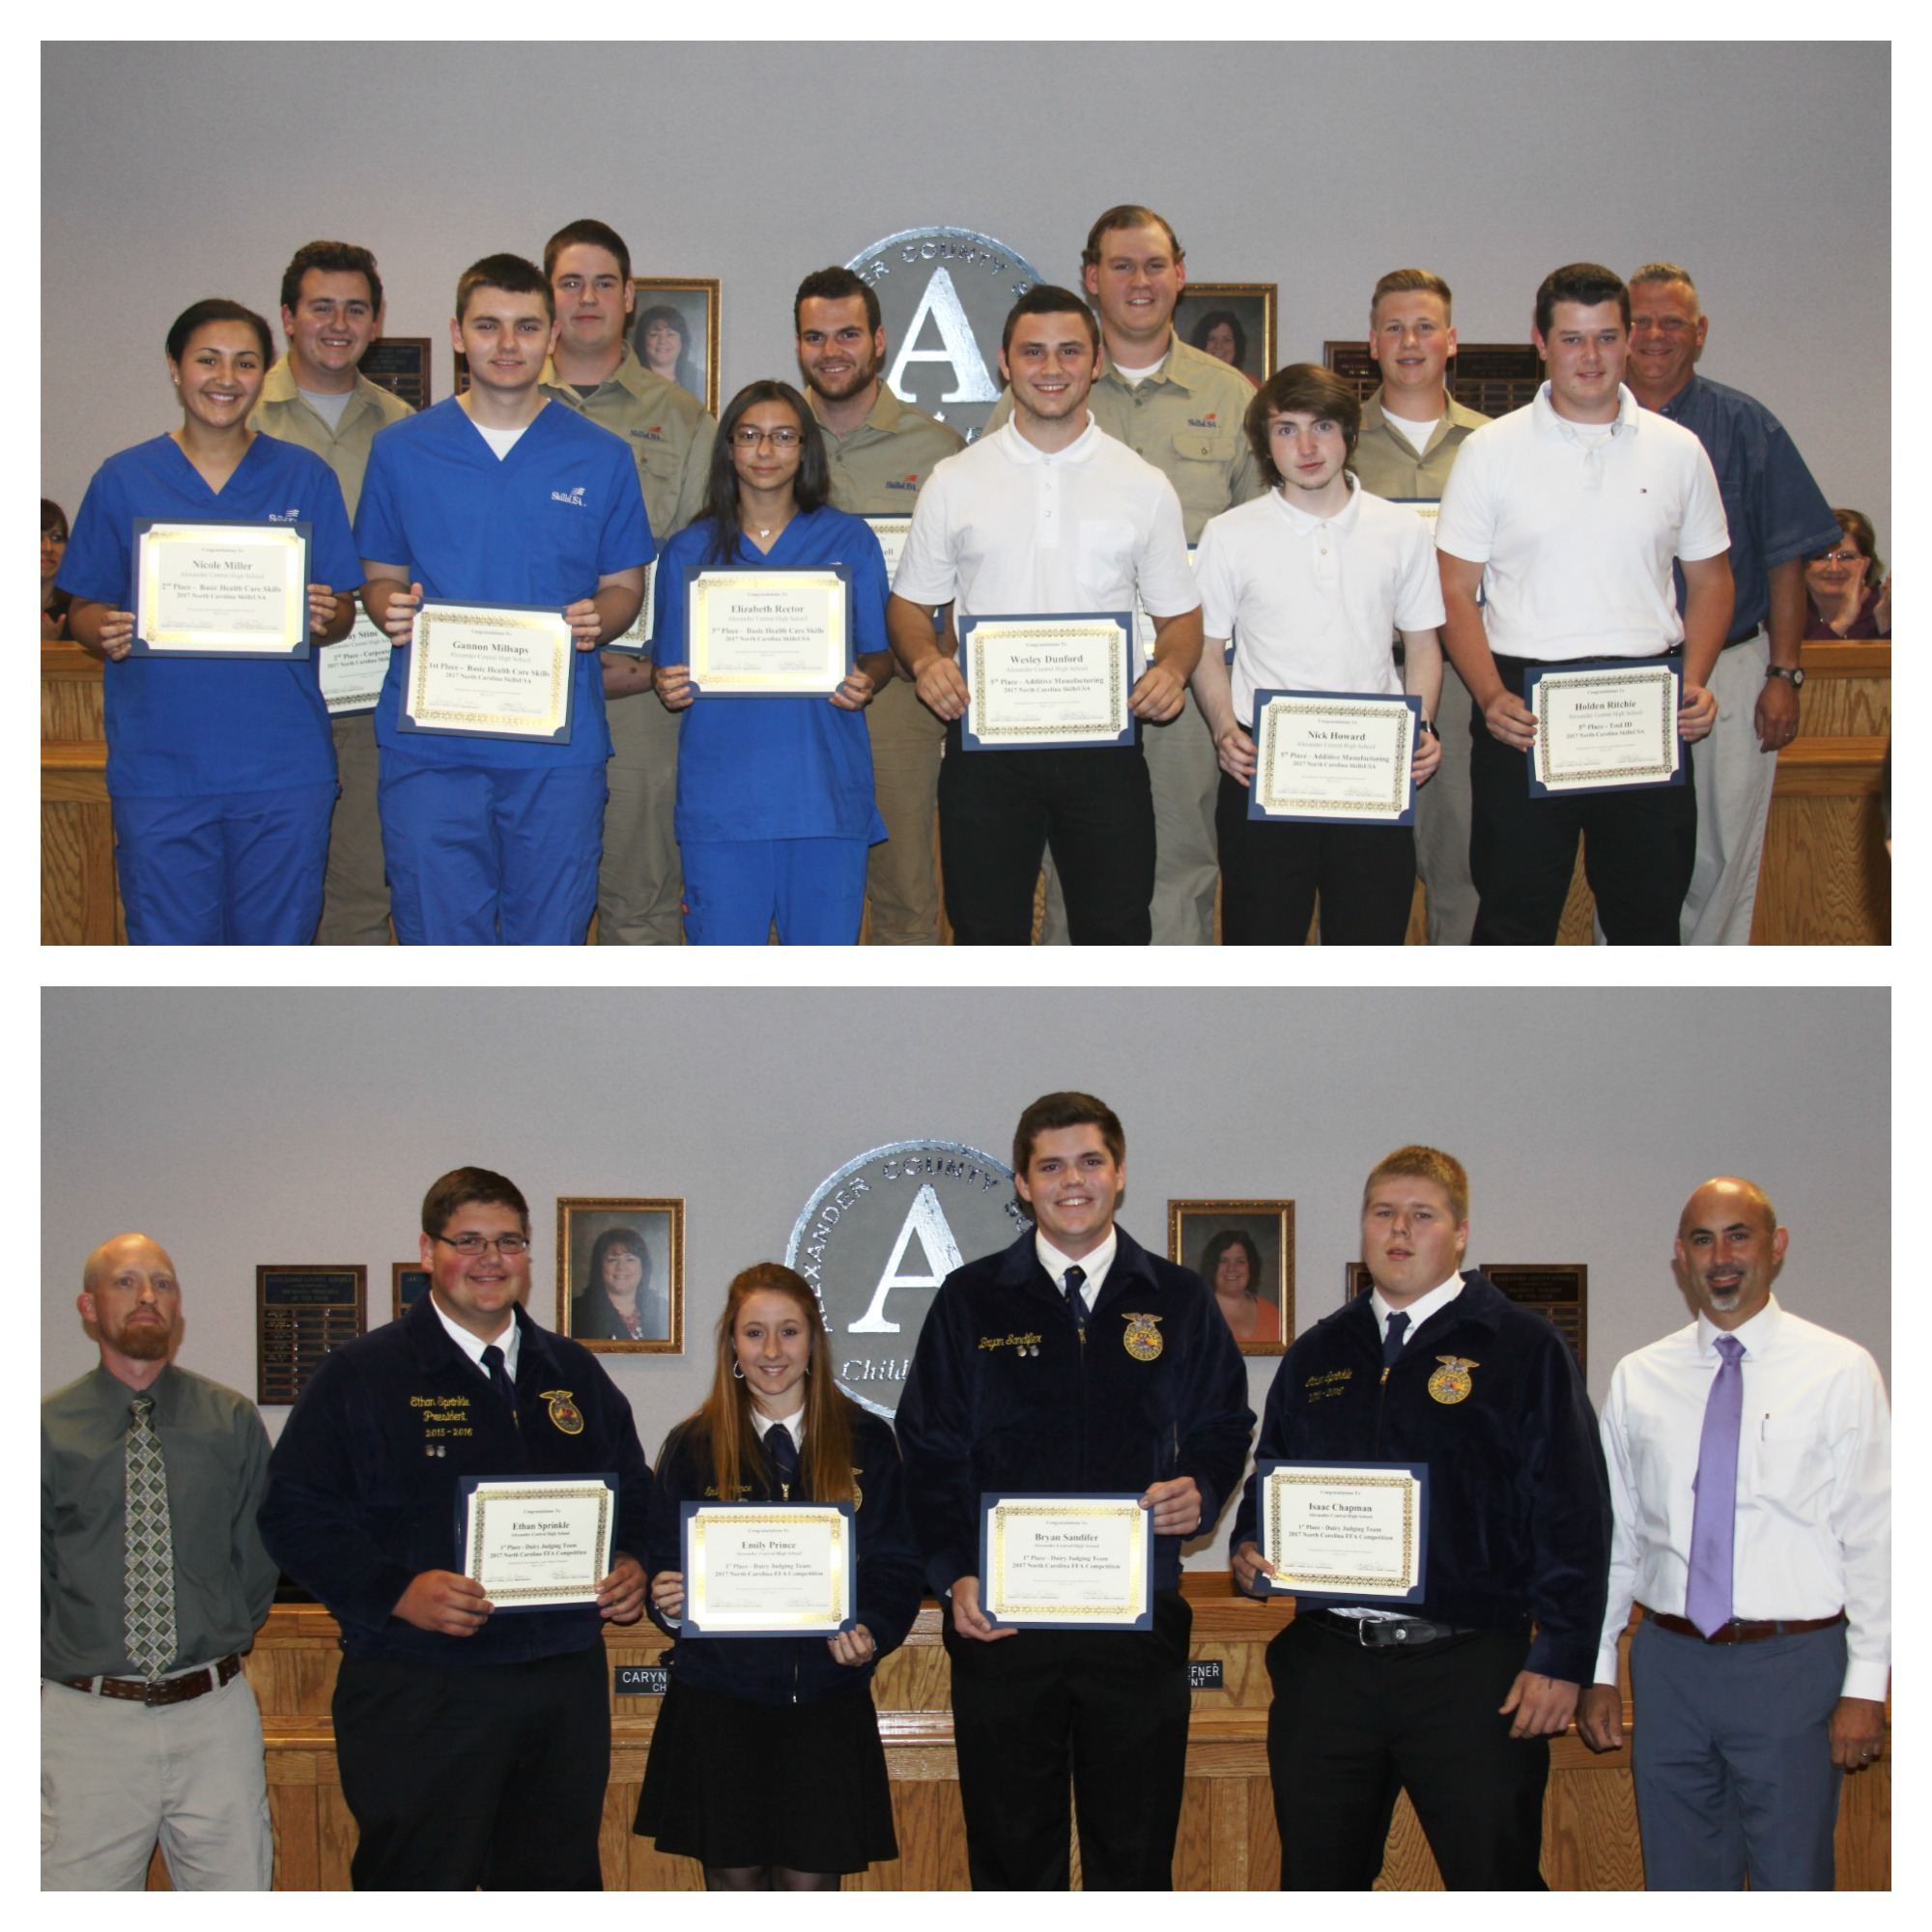 ACHS FFA and SkillsUSA Winners Recognized